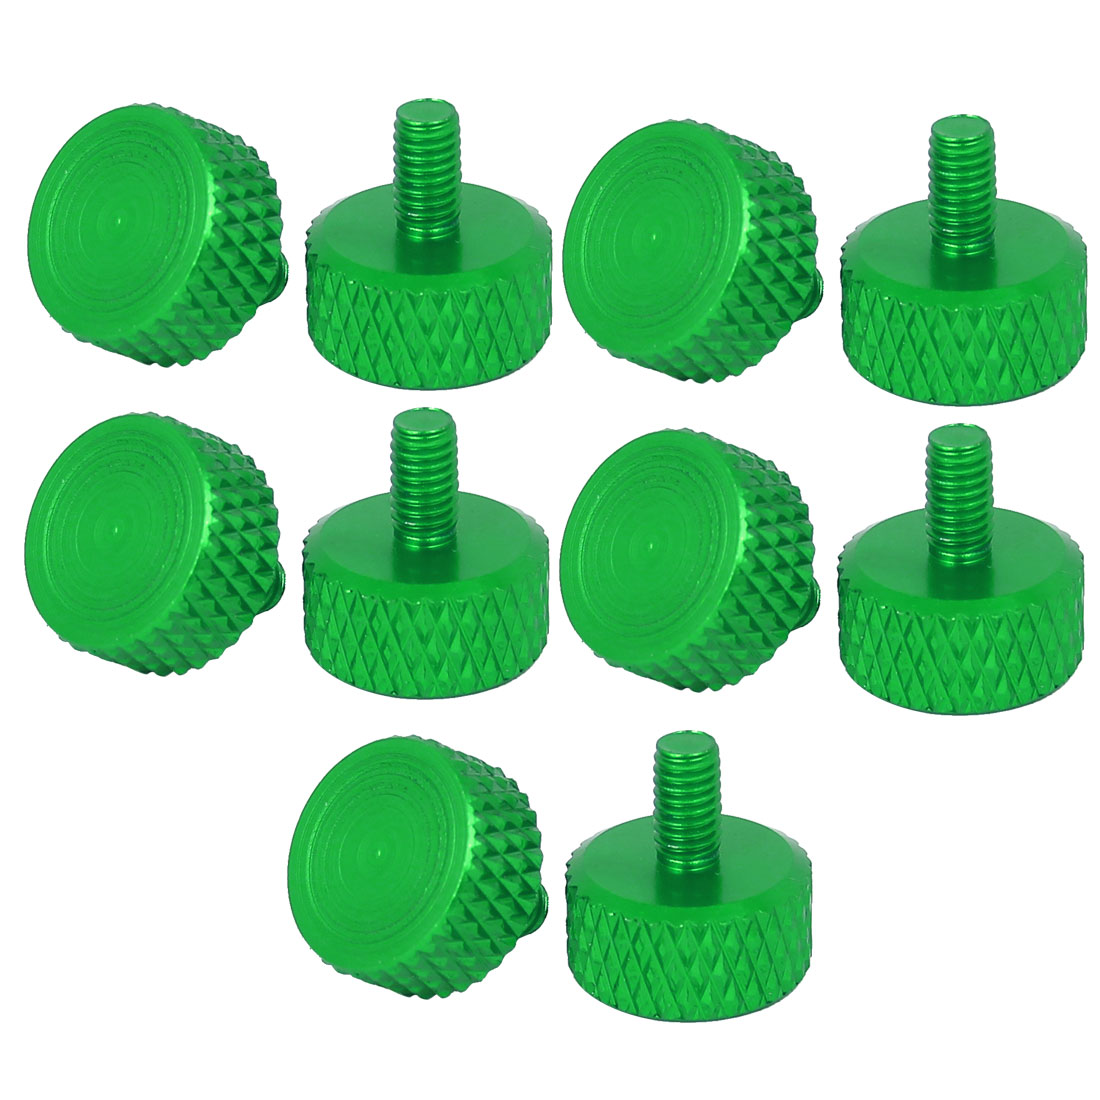 Computer PC Graphics Card Flat Head Knurled Thumb Screws Green M3.5x6mm 10pcs